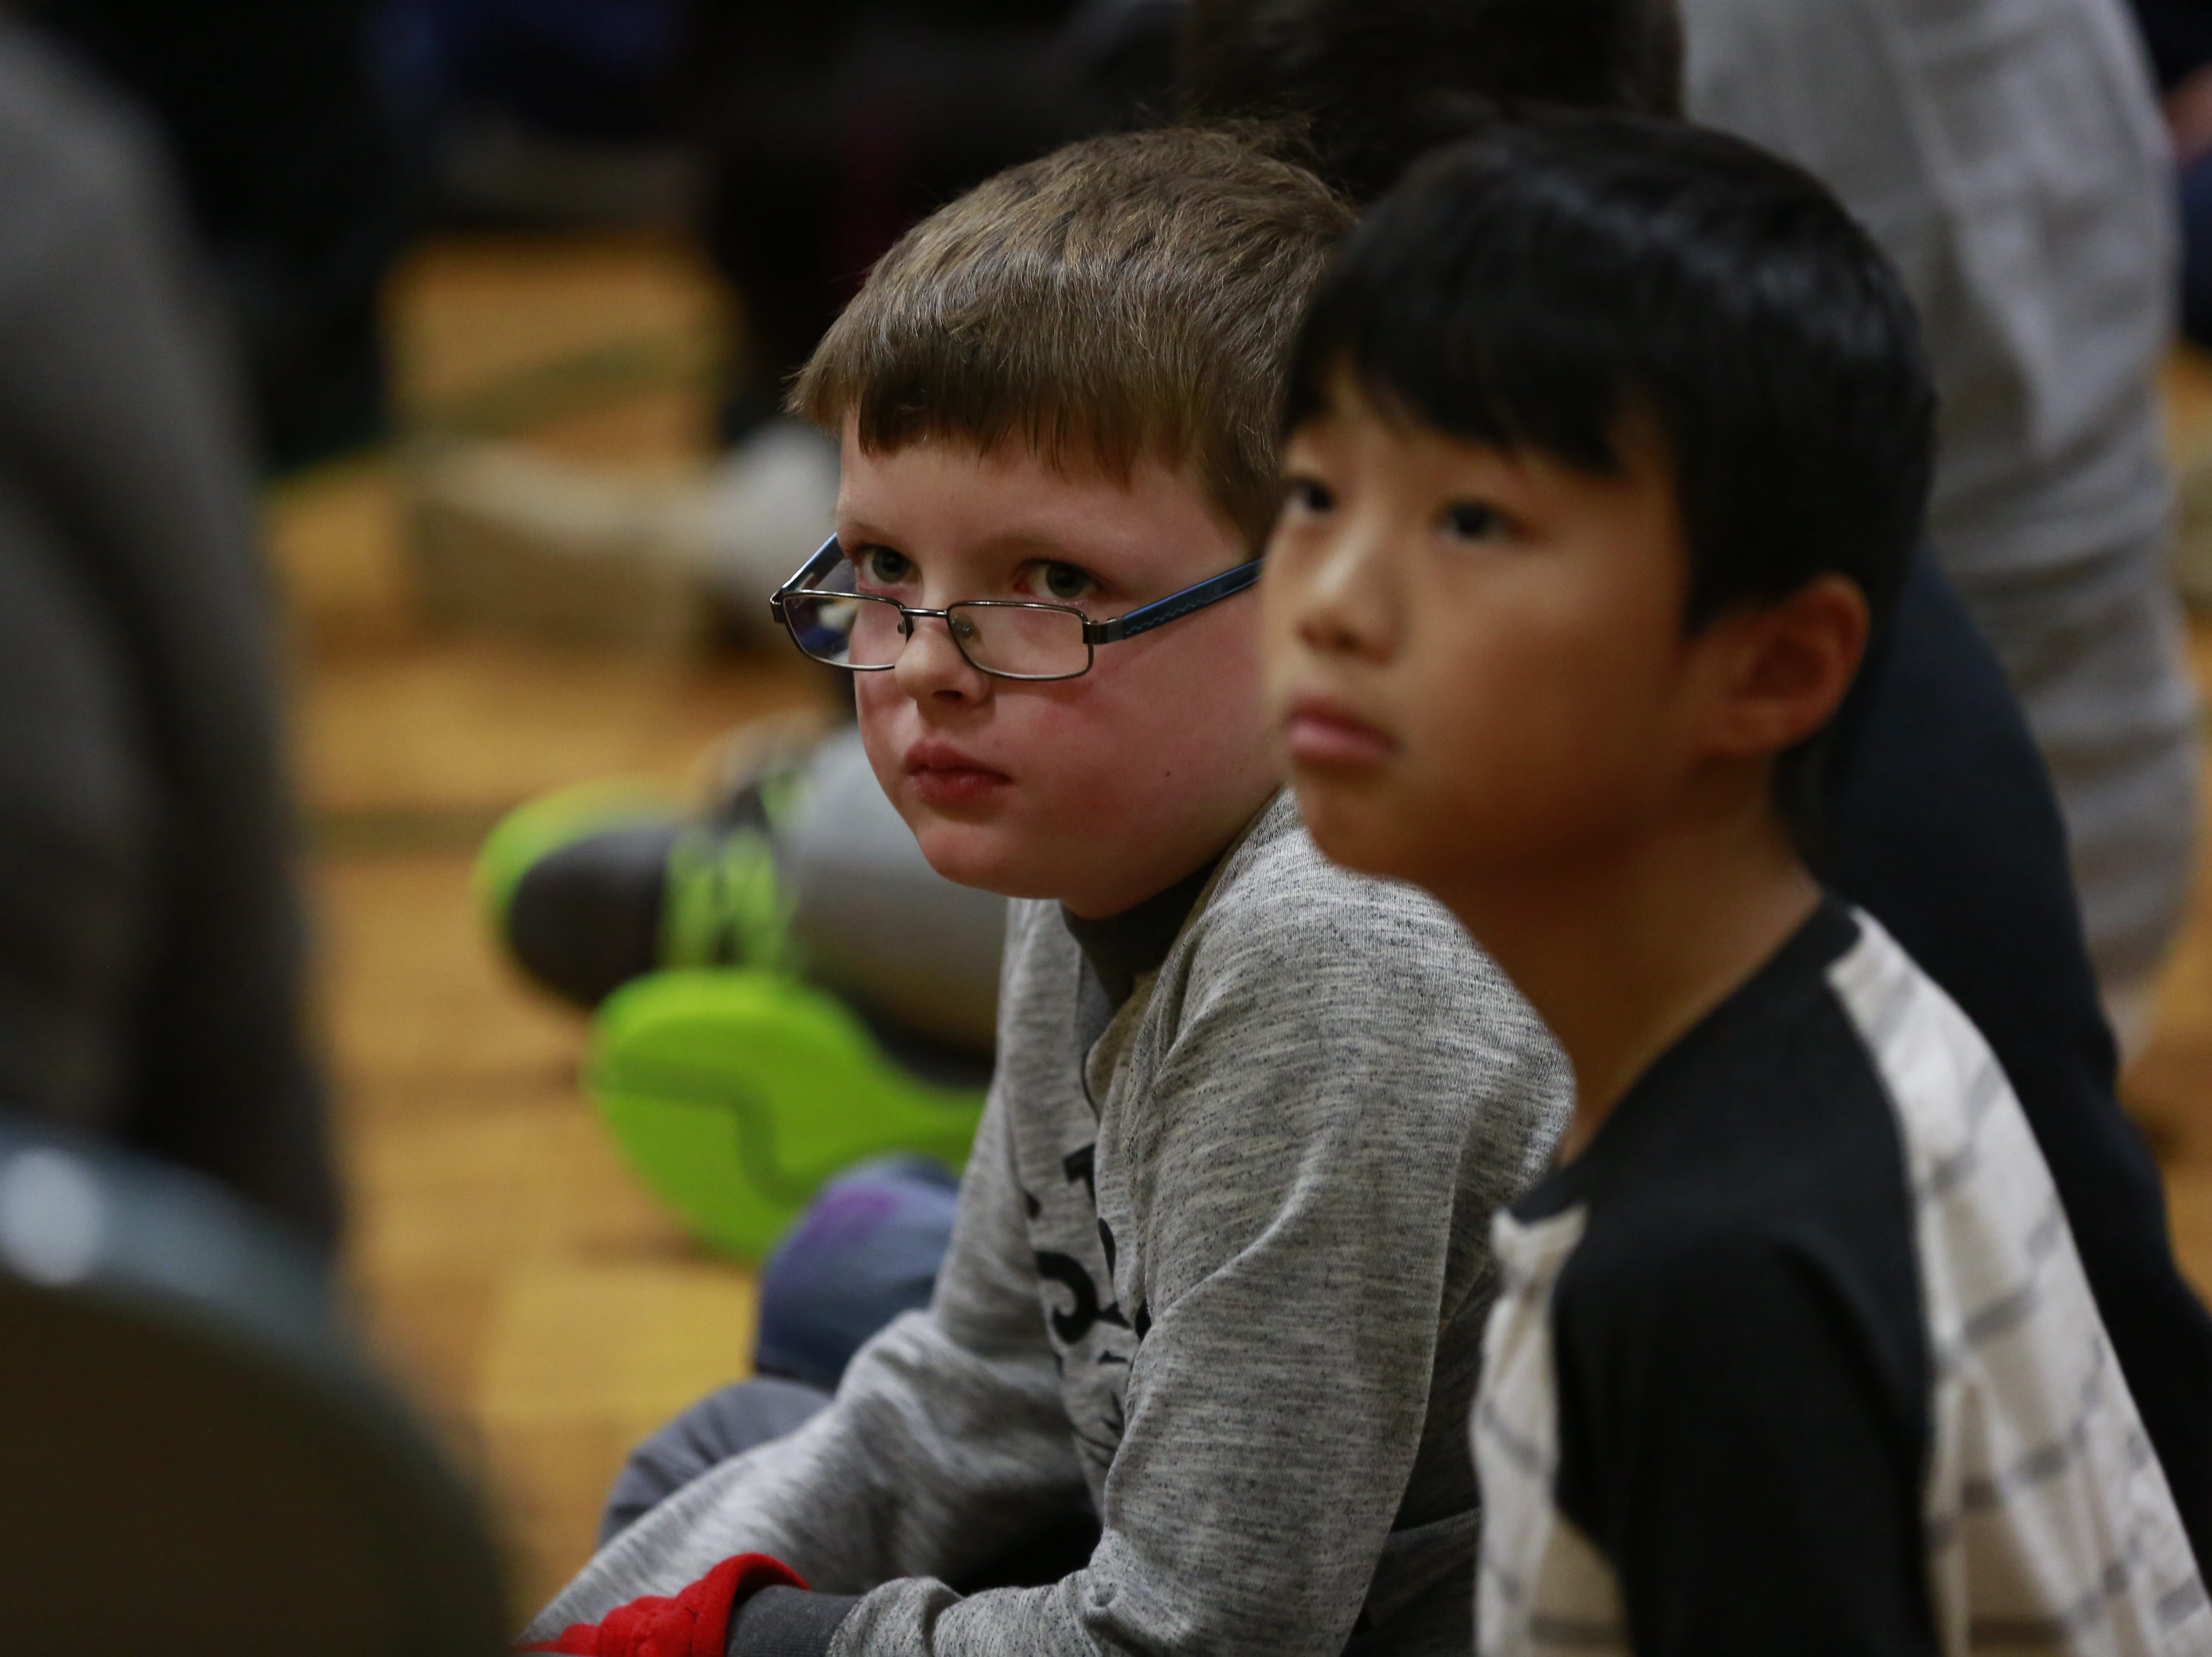 Students listen to former MSU basketball player Anthony Ianni talks about bullying Monday, Oct. 15, 2018, during the Anti-Bullying Relentless Tour to Visit Wisconsin at Weston Elementary School in Weston, Wis.